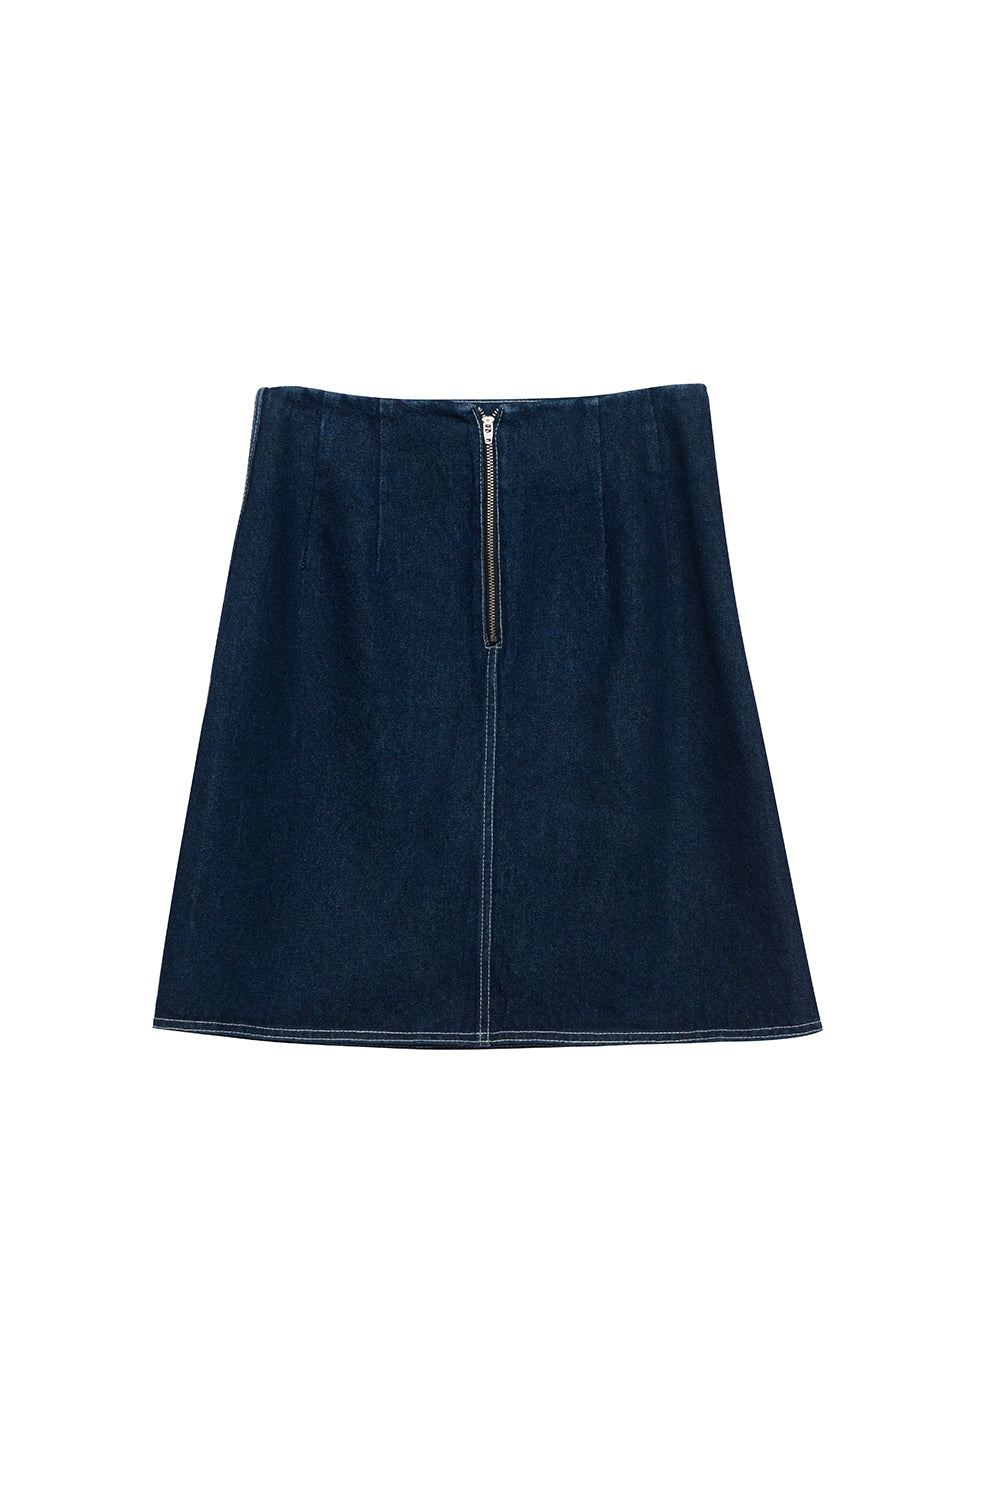 Denim Mini Skirt With Removable Twilly Scarf - front row shop